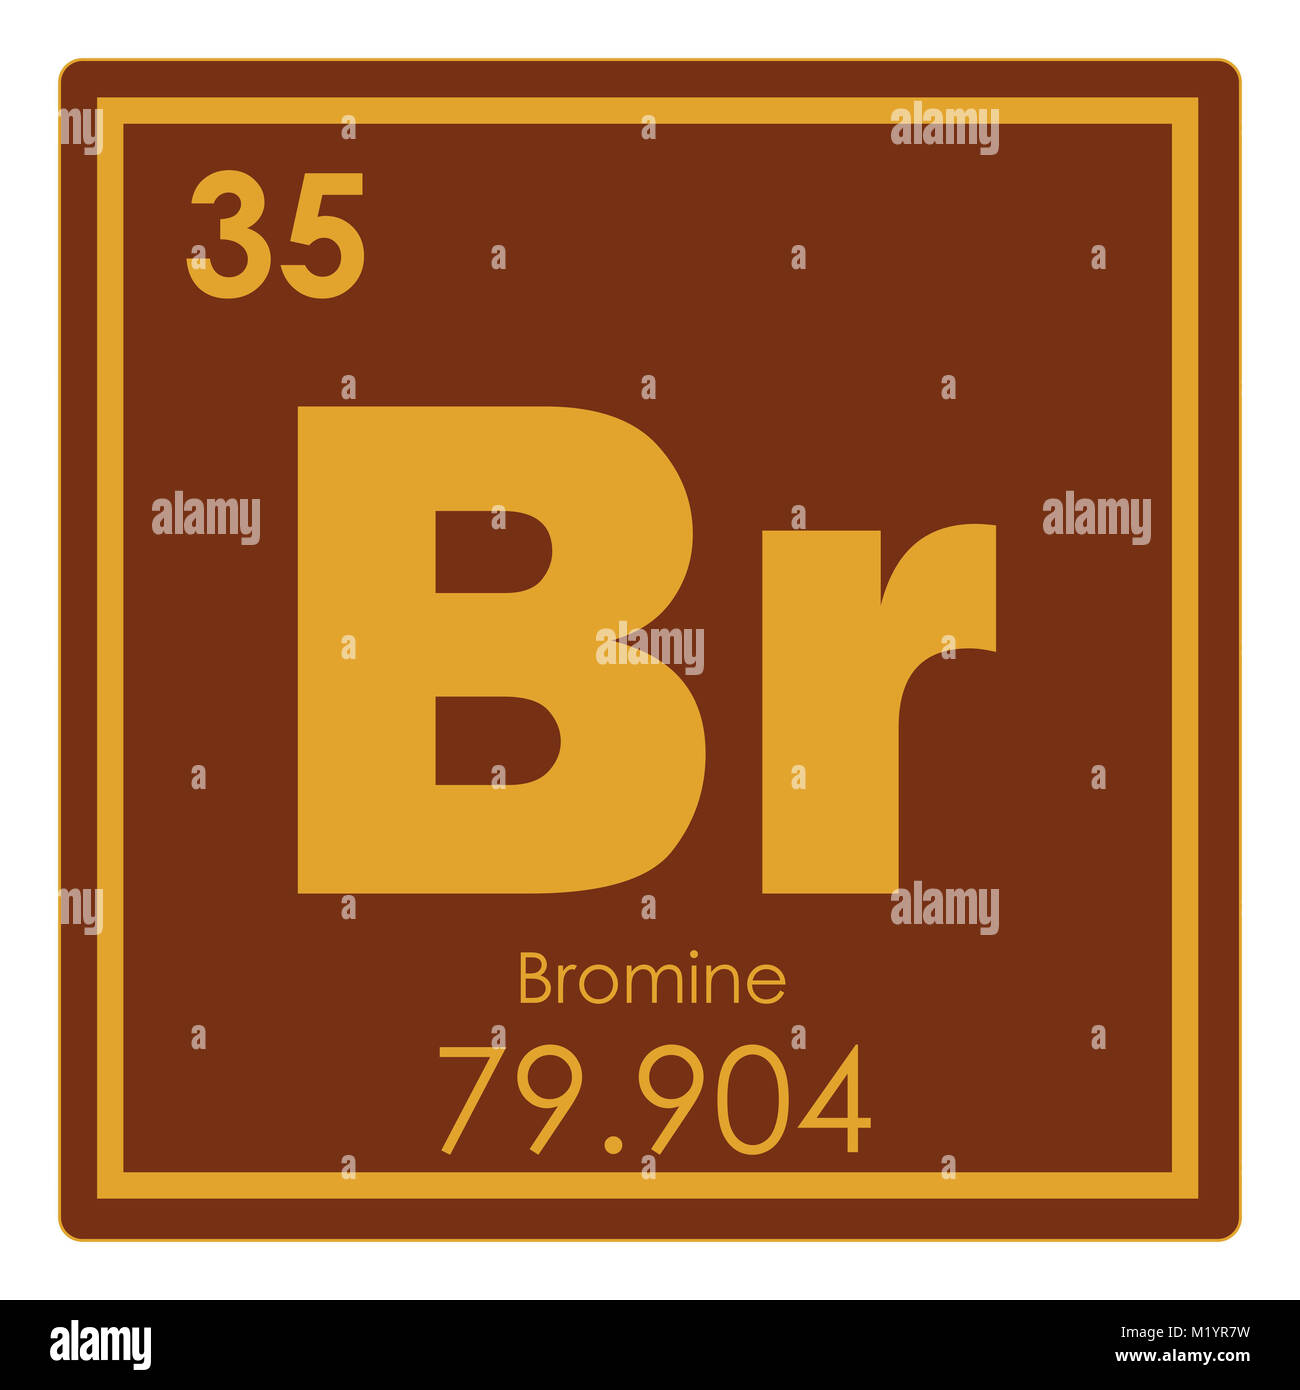 Bromine chemical element periodic table science symbol stock photo bromine chemical element periodic table science symbol biocorpaavc